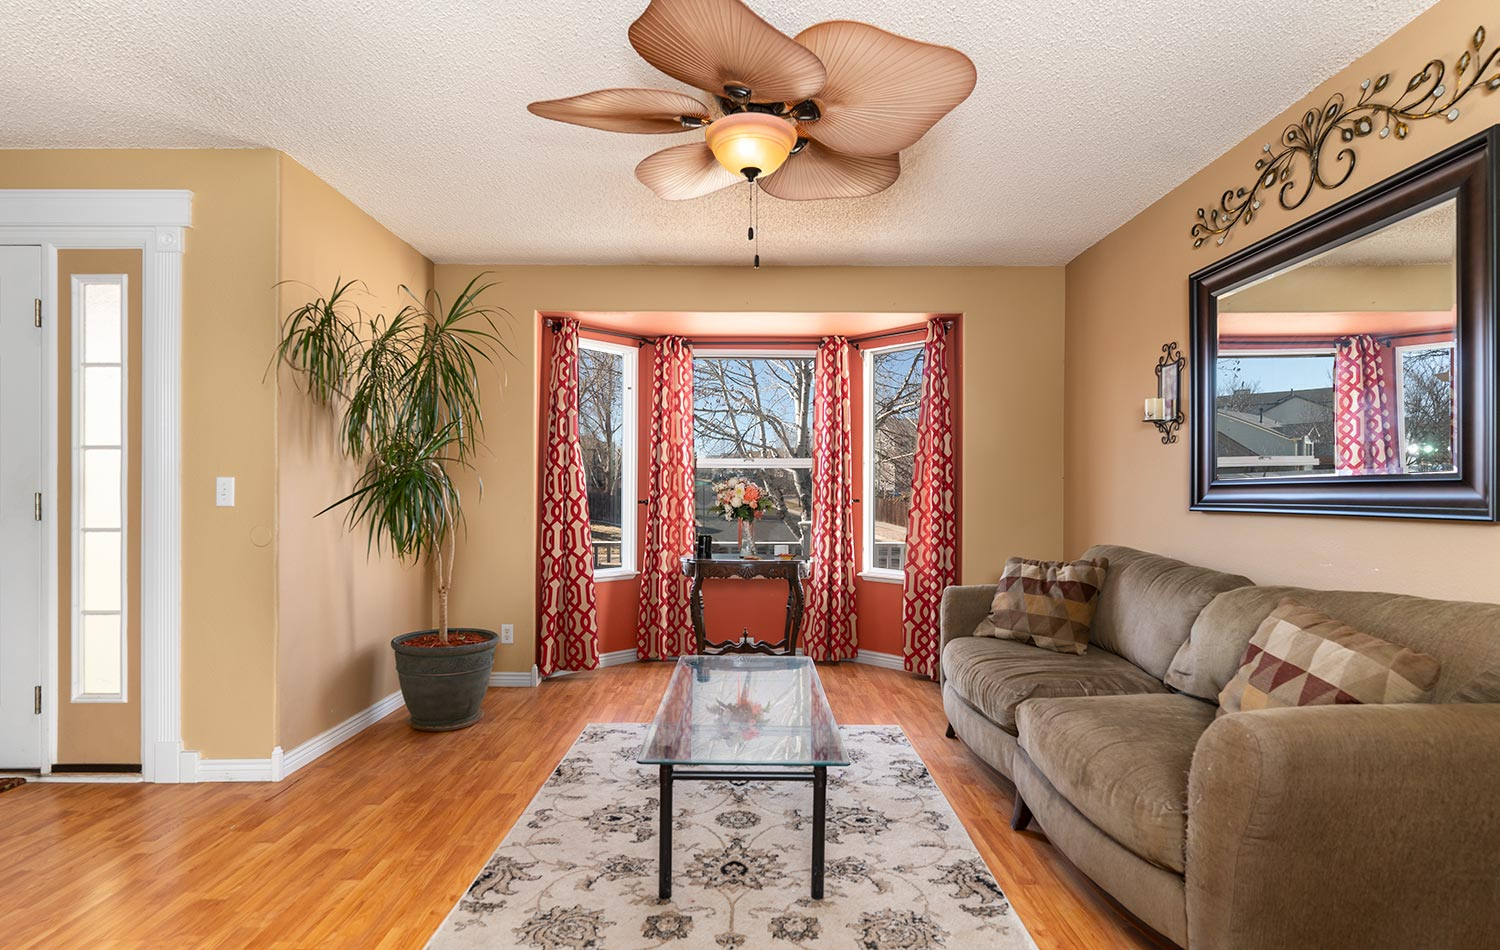 Real Estate photo of living room in Colorado Springs Home